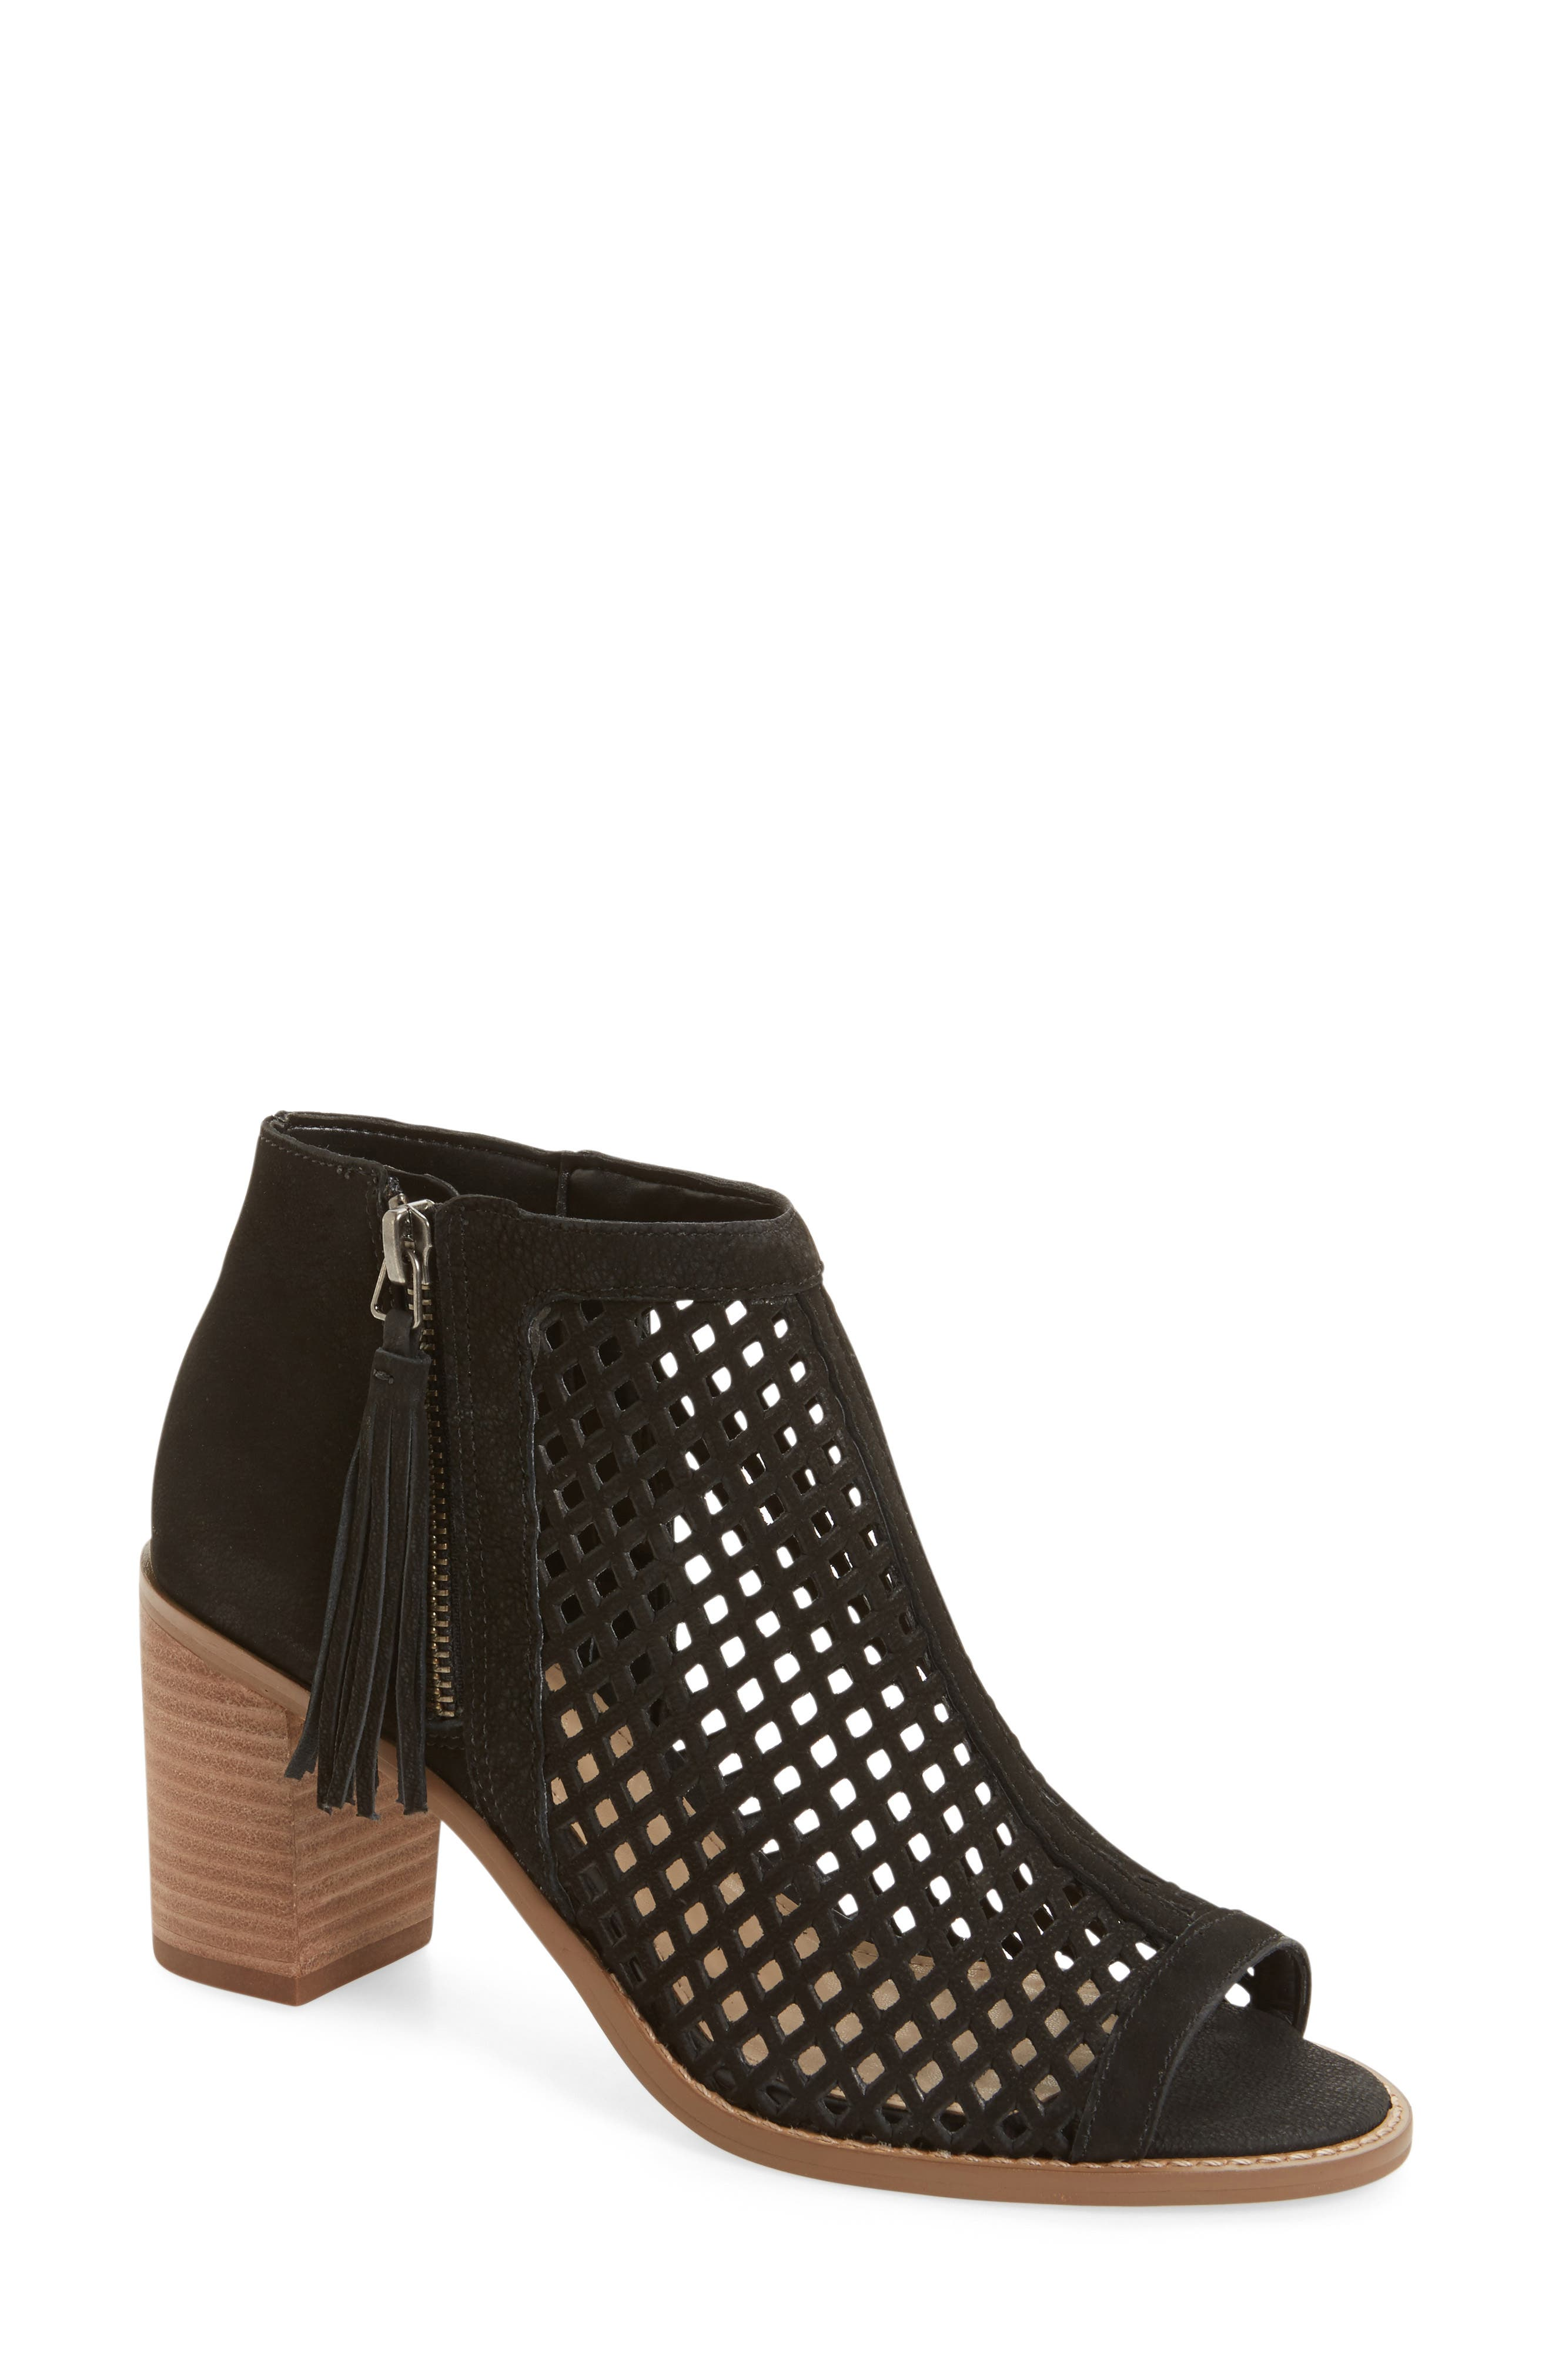 Tresin Perforated Open-Toe Bootie, Main, color, 001